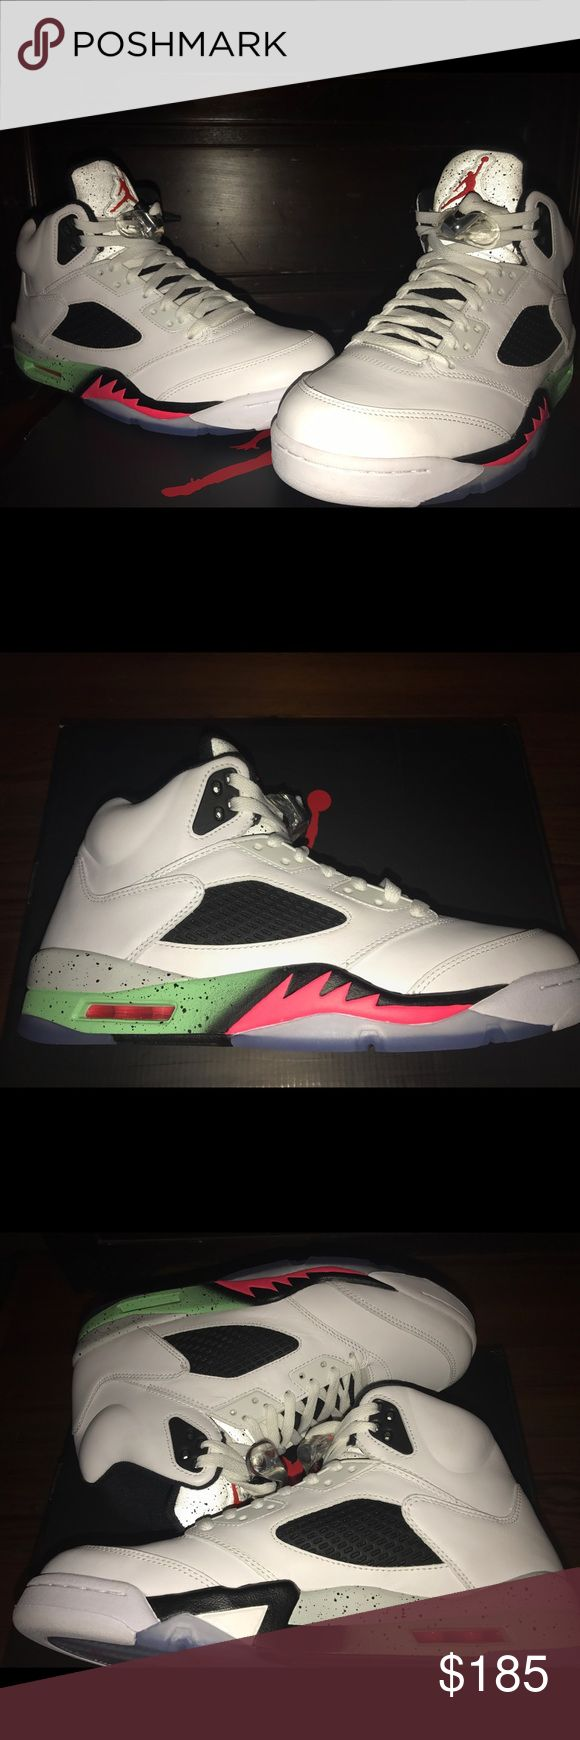 Air Jordan 5 Pro Stars - WORN ONCE: LIKE NEW Air Jordan 5 Pro Stars - Worn once, LIKE NEW, EXCELLENT CONDITION. Kept in original box which is included with purchase. Wont last long! Jordan Shoes Sneakers